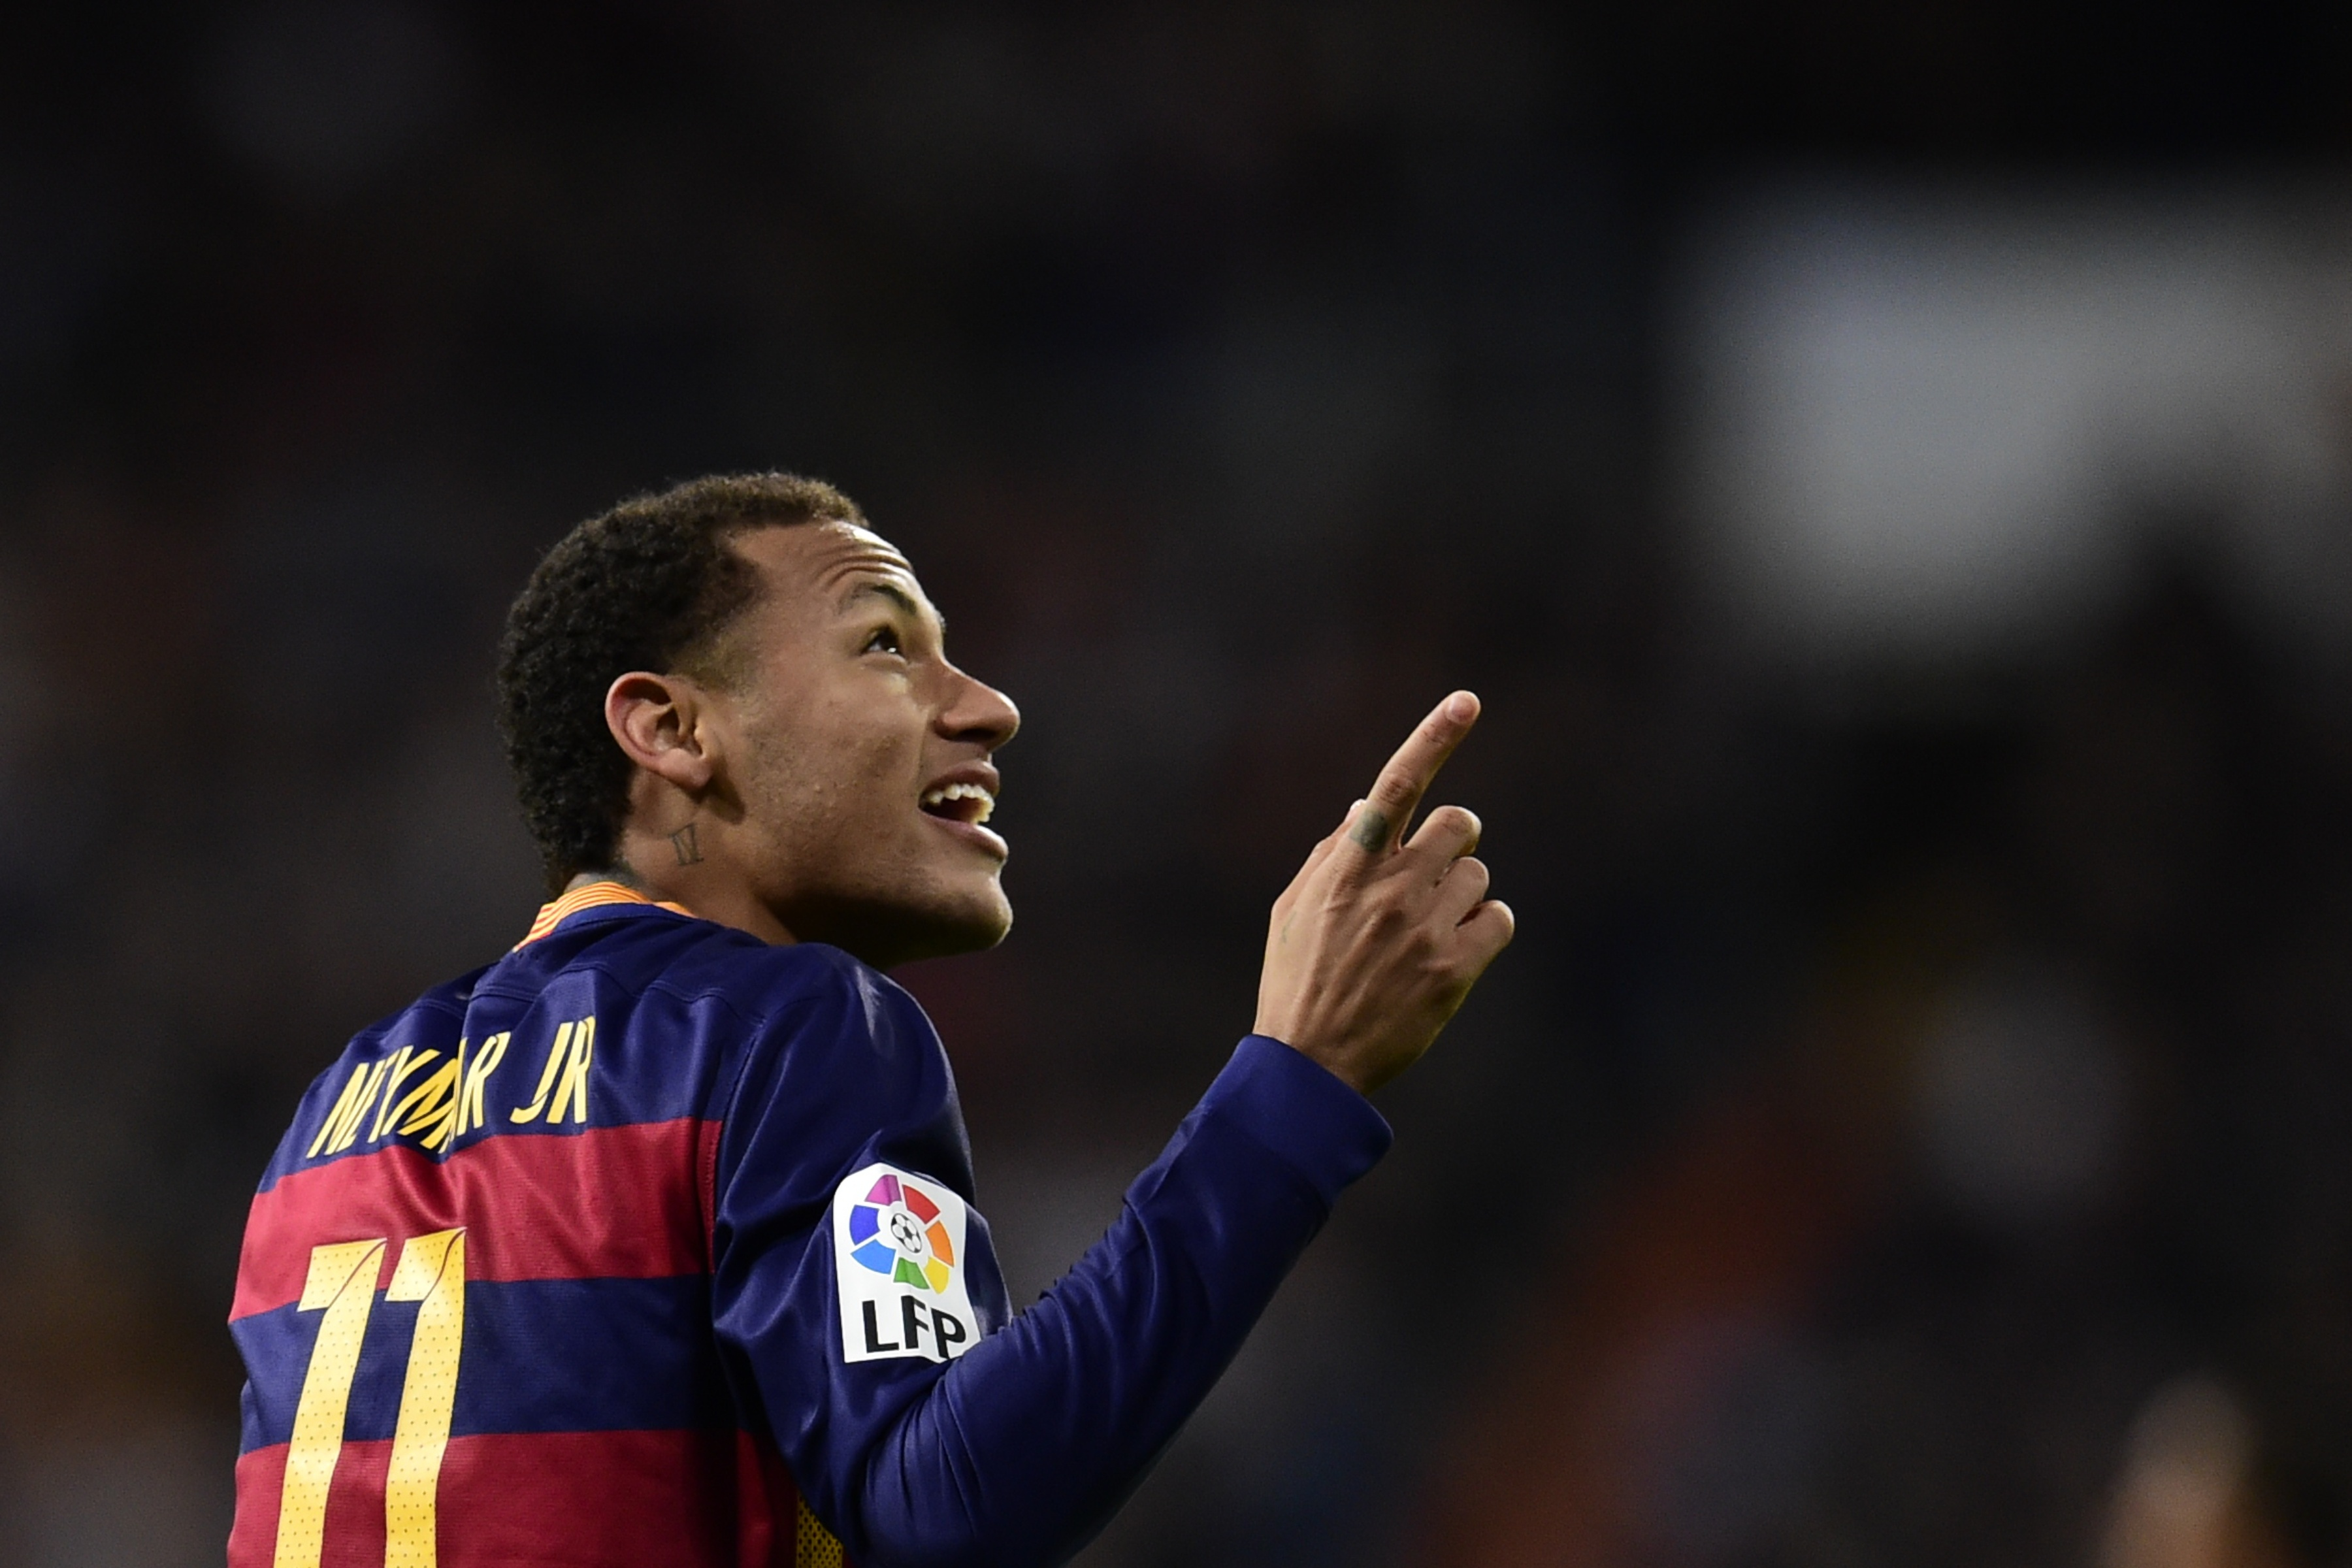 """Barcelona's Brazilian forward Neymar gestures during the Spanish league """"Clasico"""" football match Real Madrid CF vs FC Barcelona at the Santiago Bernabeu stadium in Madrid on November 21, 2015. / AFP / JAVIER SORIANO (Photo credit should read JAVIER SORIANO/AFP/Getty Images)"""